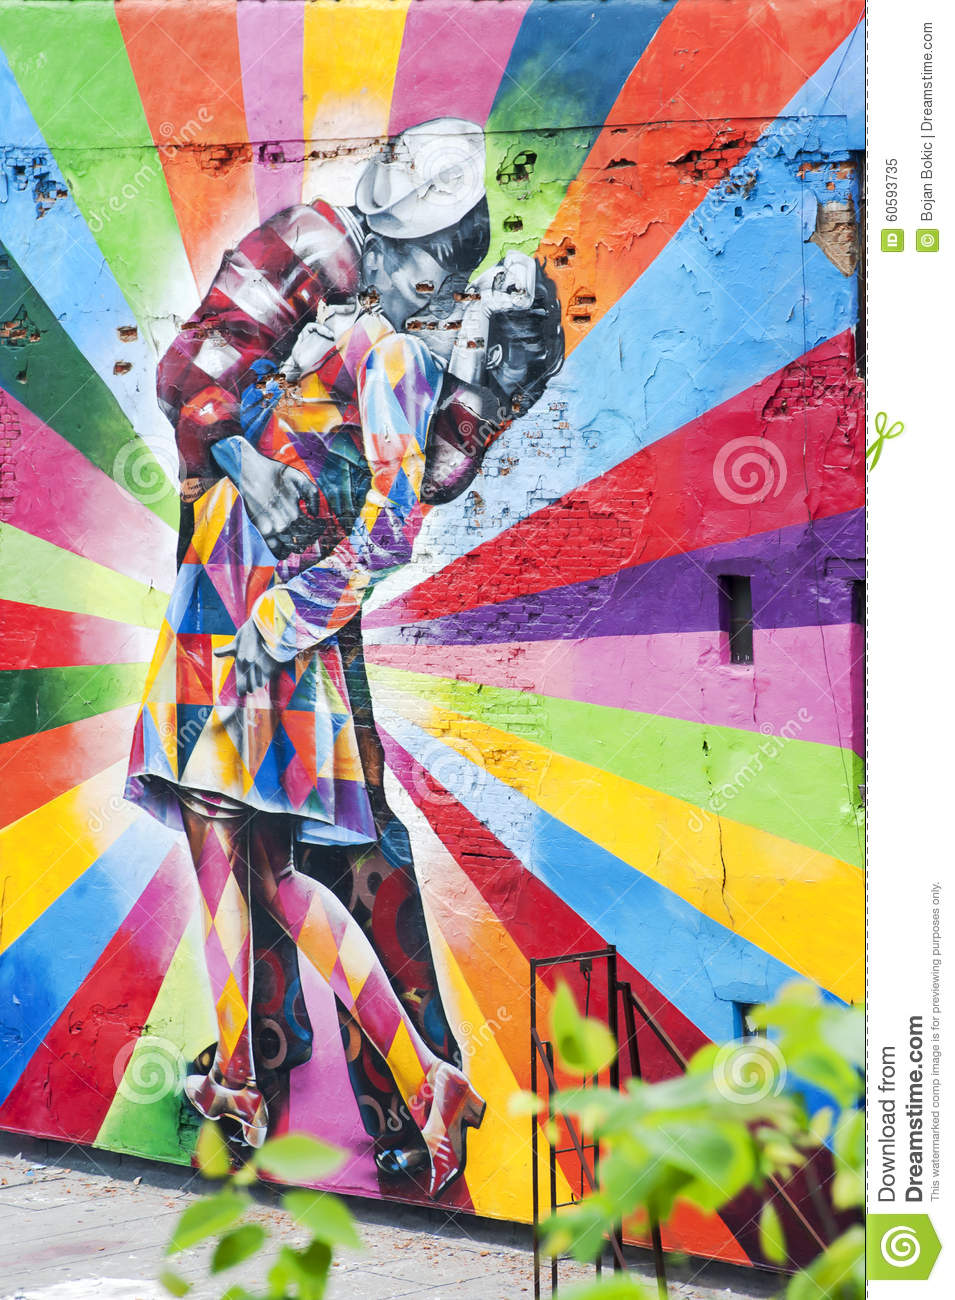 Foto Murales New York.A Mural On The Wall In New York Ny Editorial Image Image